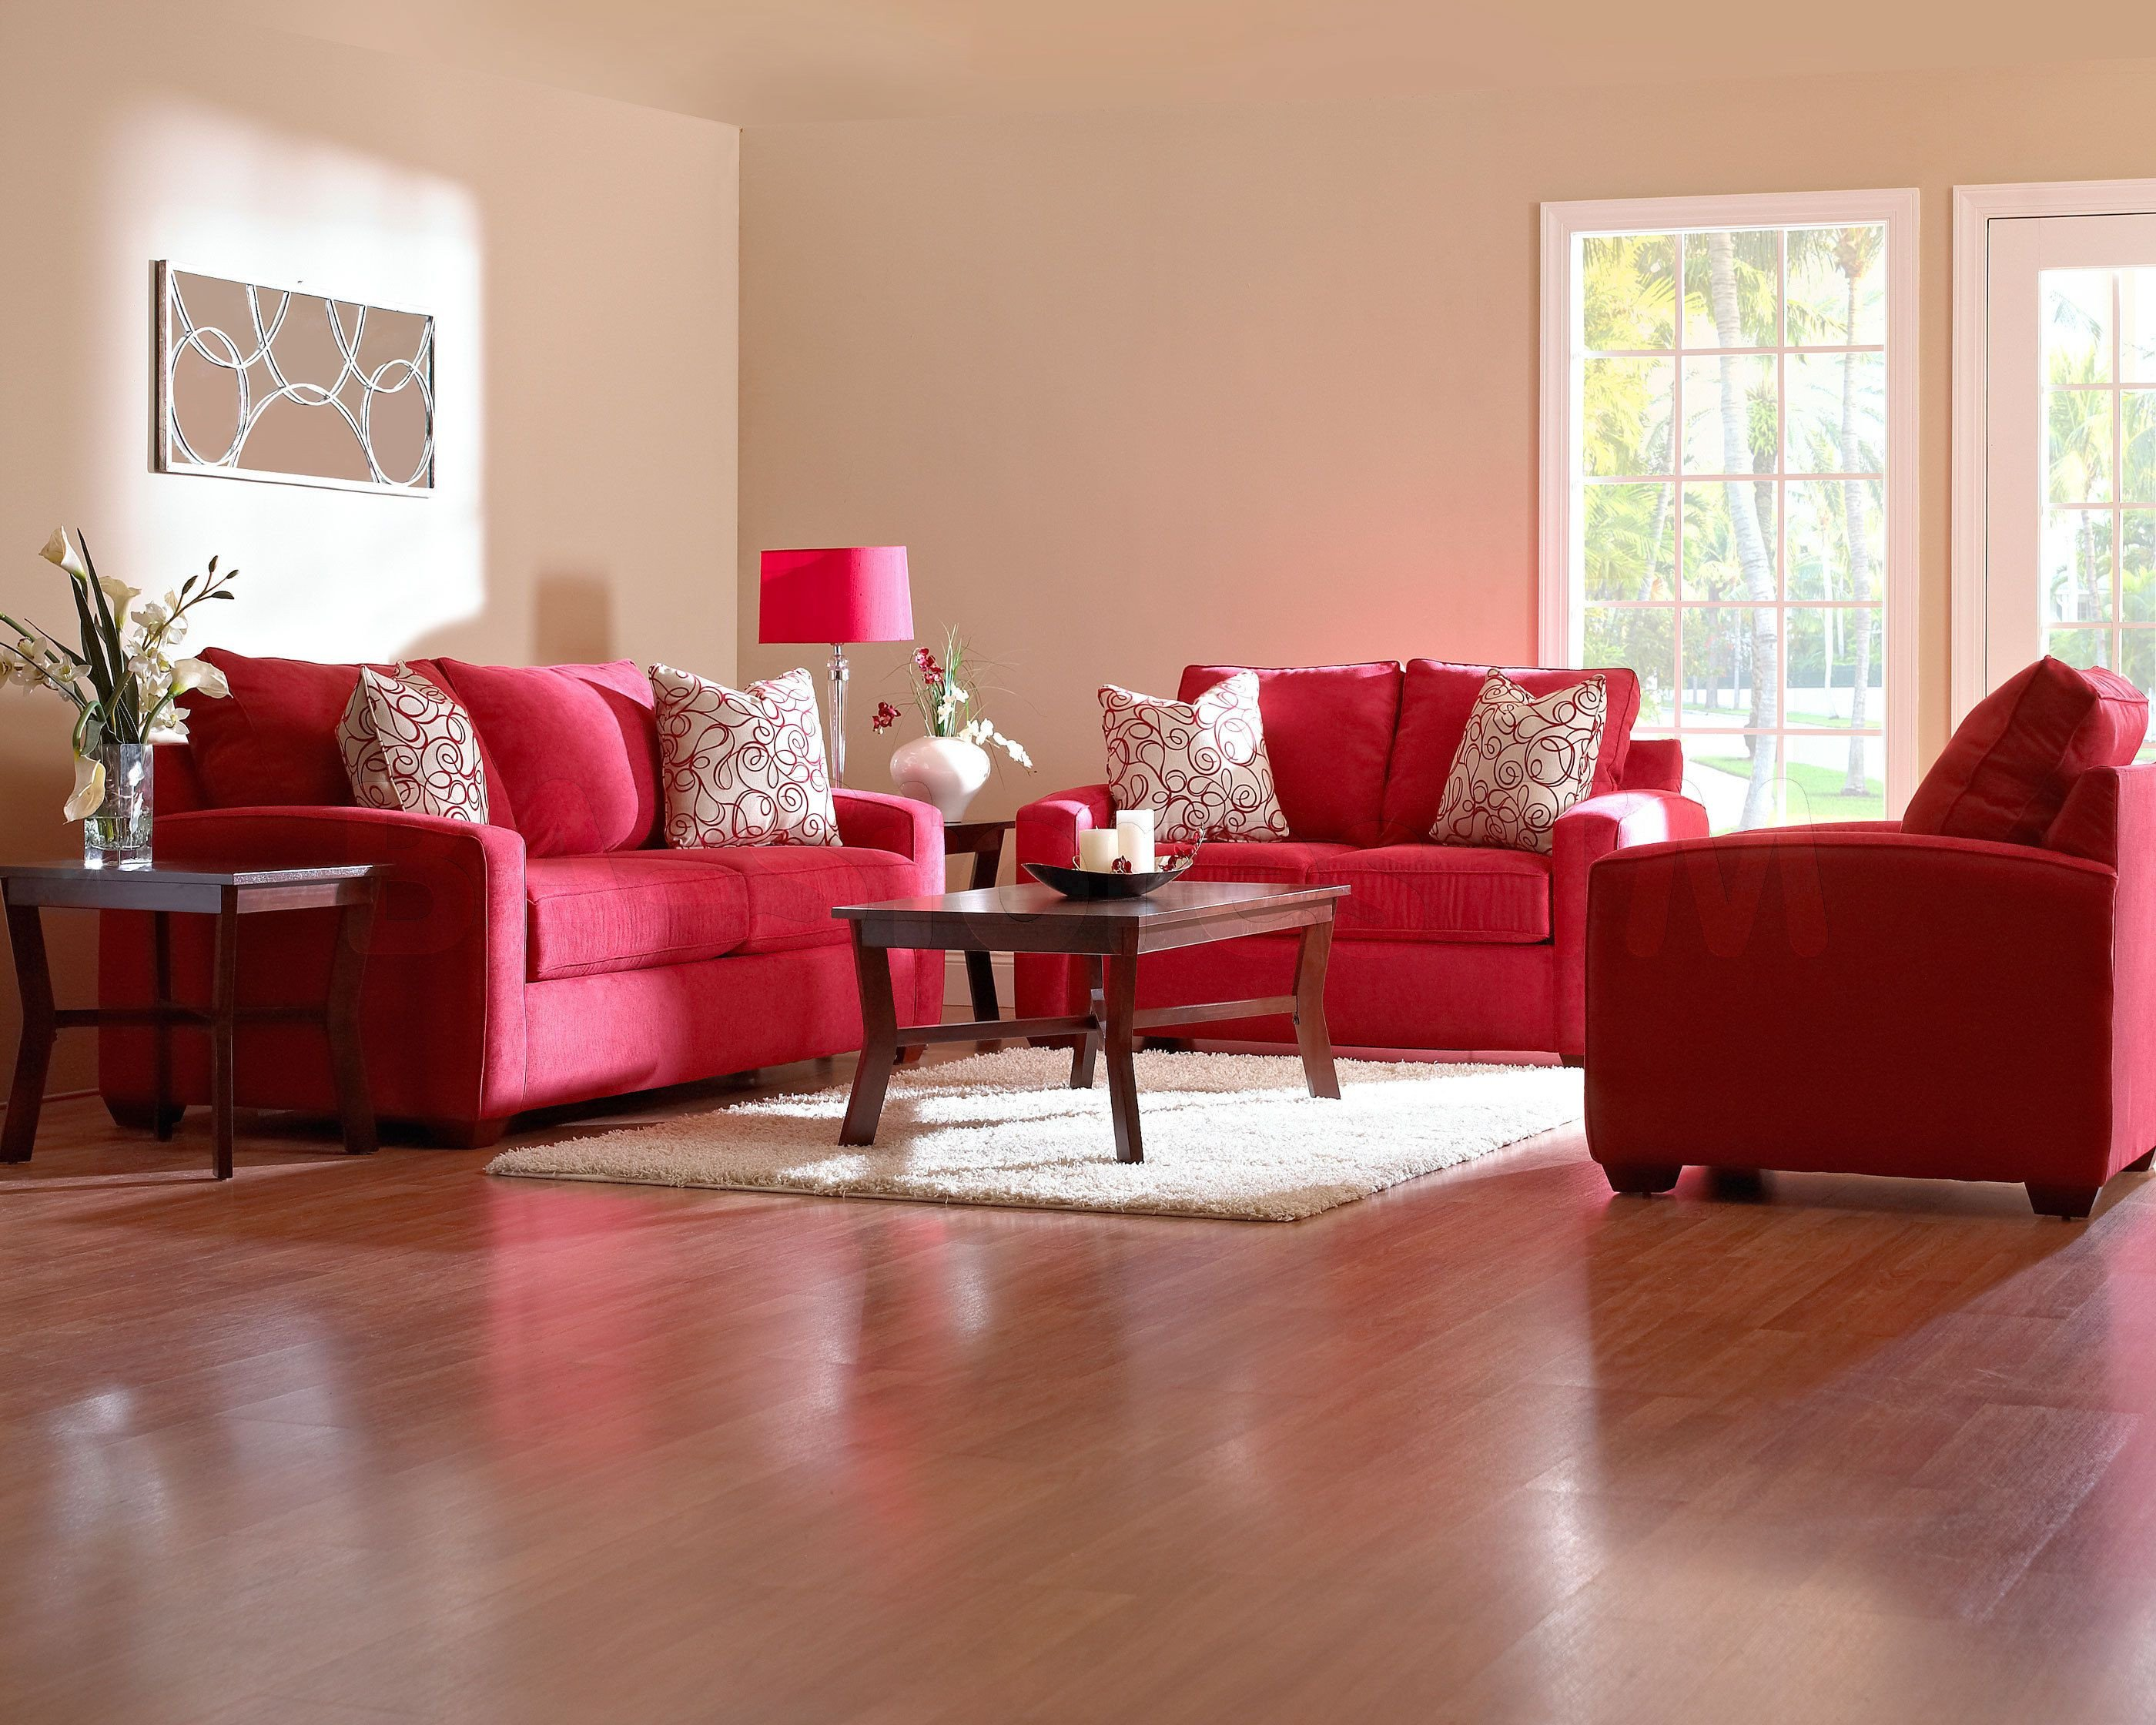 Red Couch Living Room Decor Red Furniture Decorating Ideas